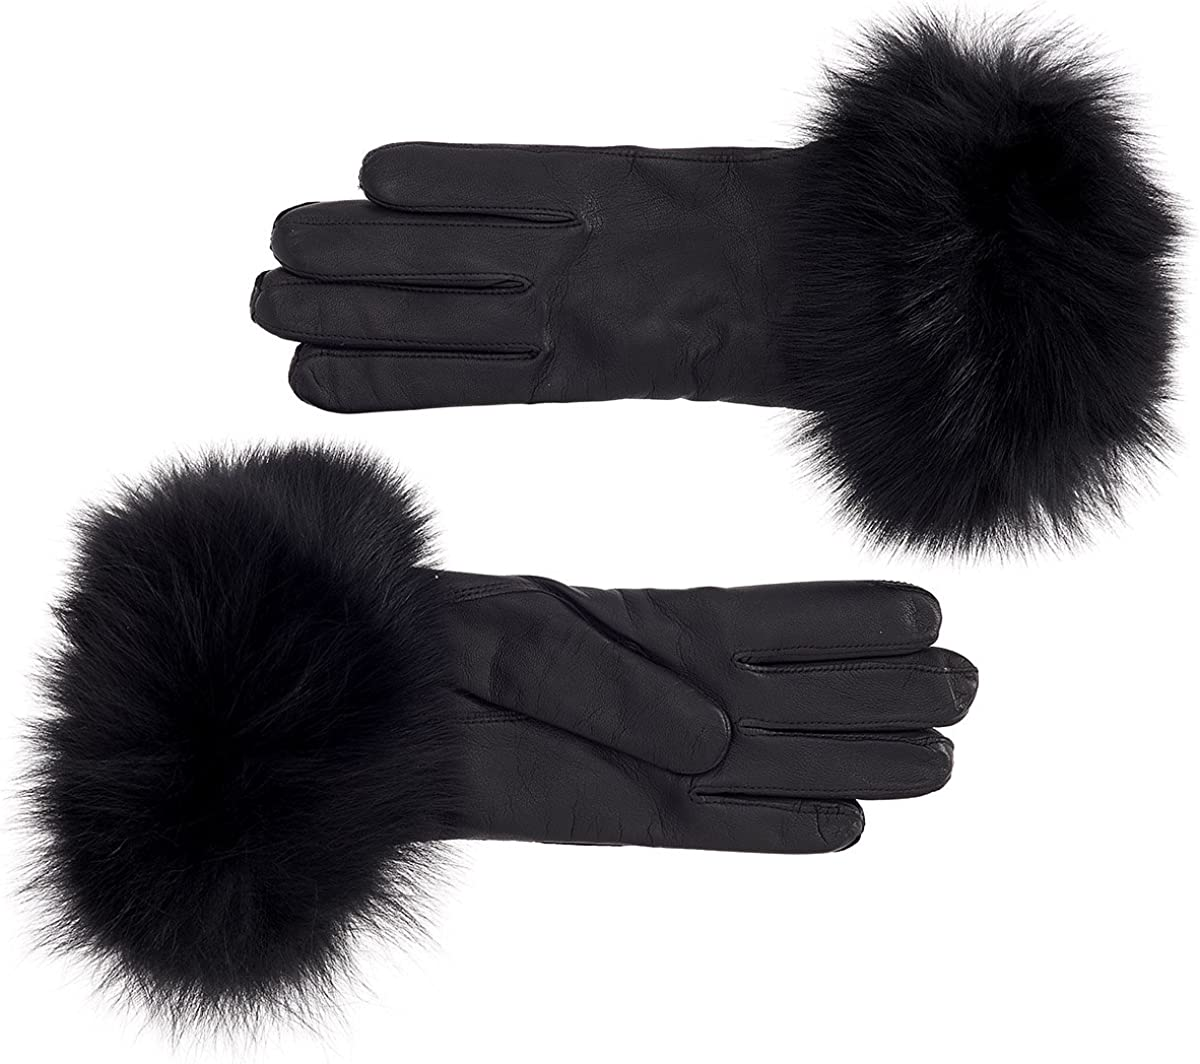 Women's Rabbit Fur Lined Leather Gloves (Small)